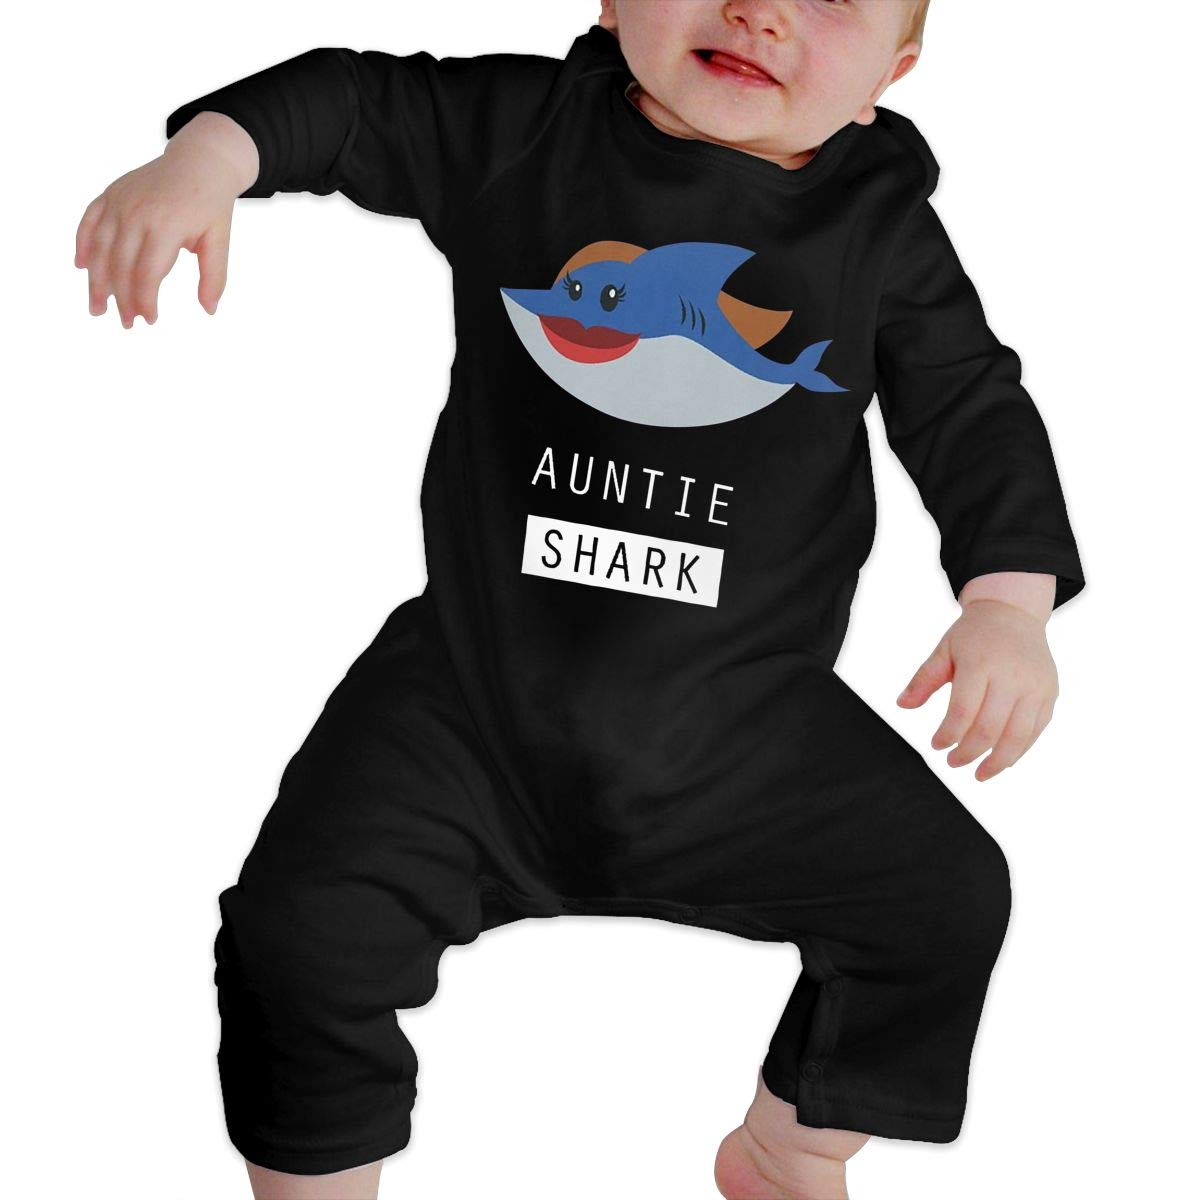 Baby Boy Girl Crew Neck Long Sleeve Solid Color Climbing Clothes Auntie Shark Baby Shark Doo Crawling Suit